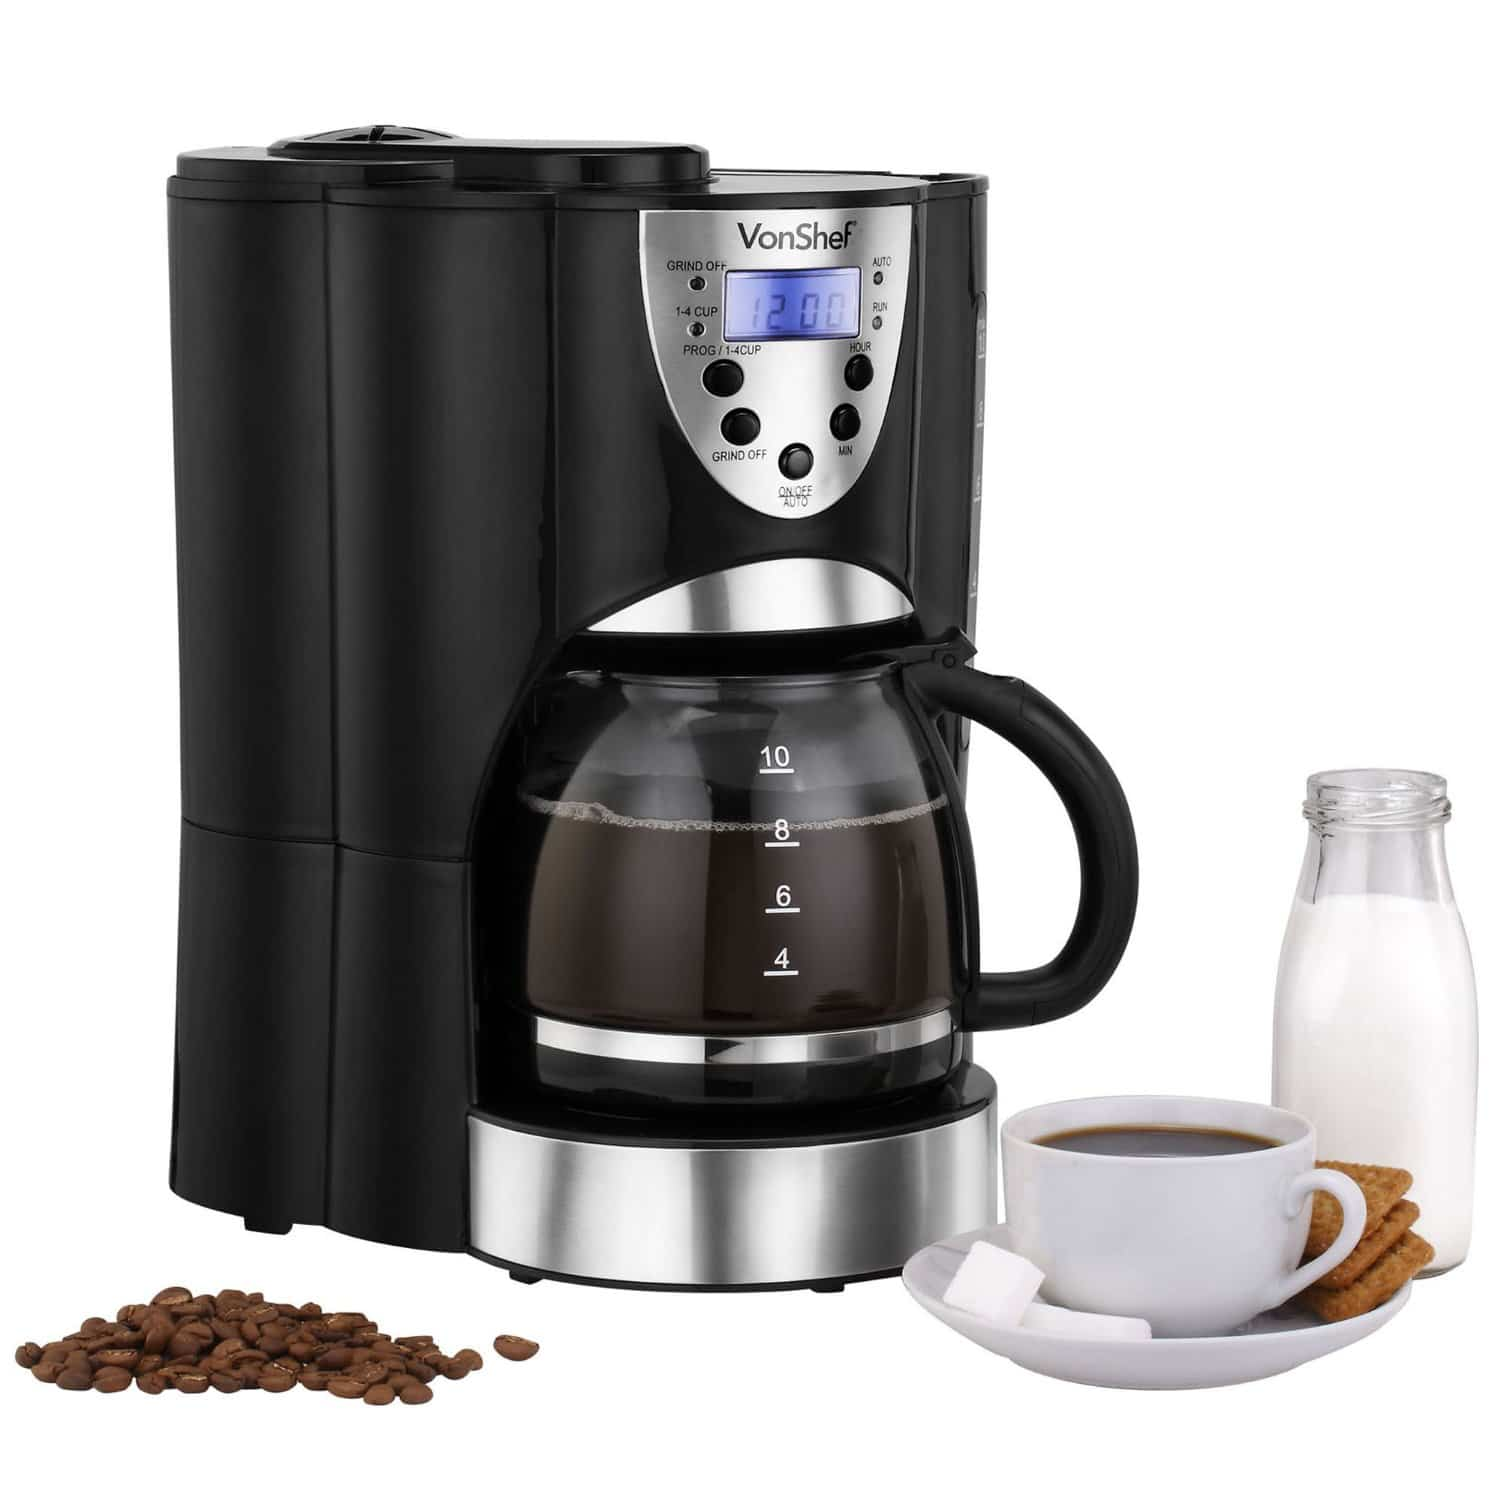 VonShef Digital Filter Coffee Maker with Integrated Grinder 13:163